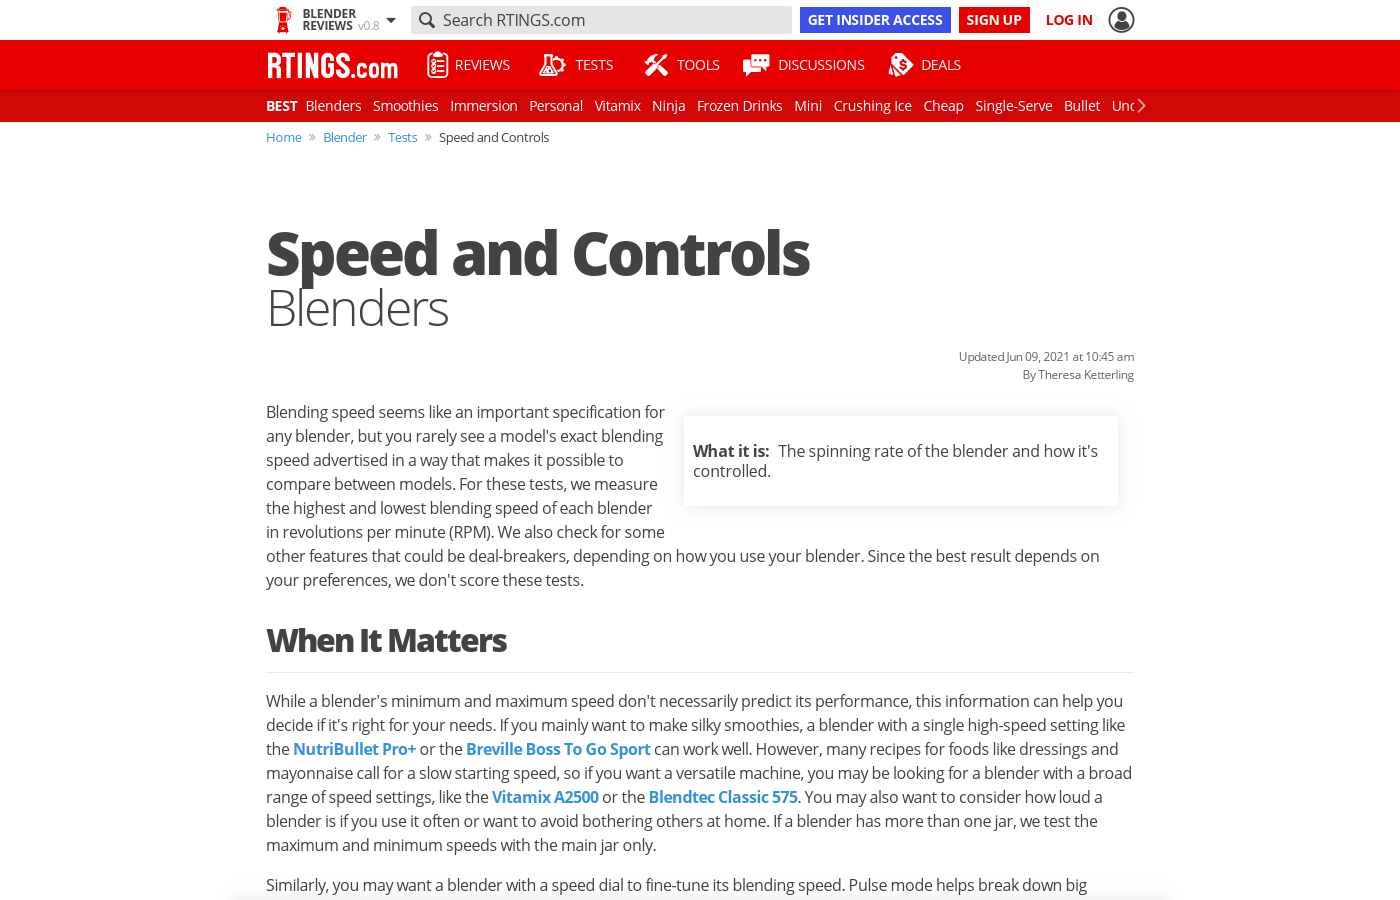 Test Article: Speed and Controls